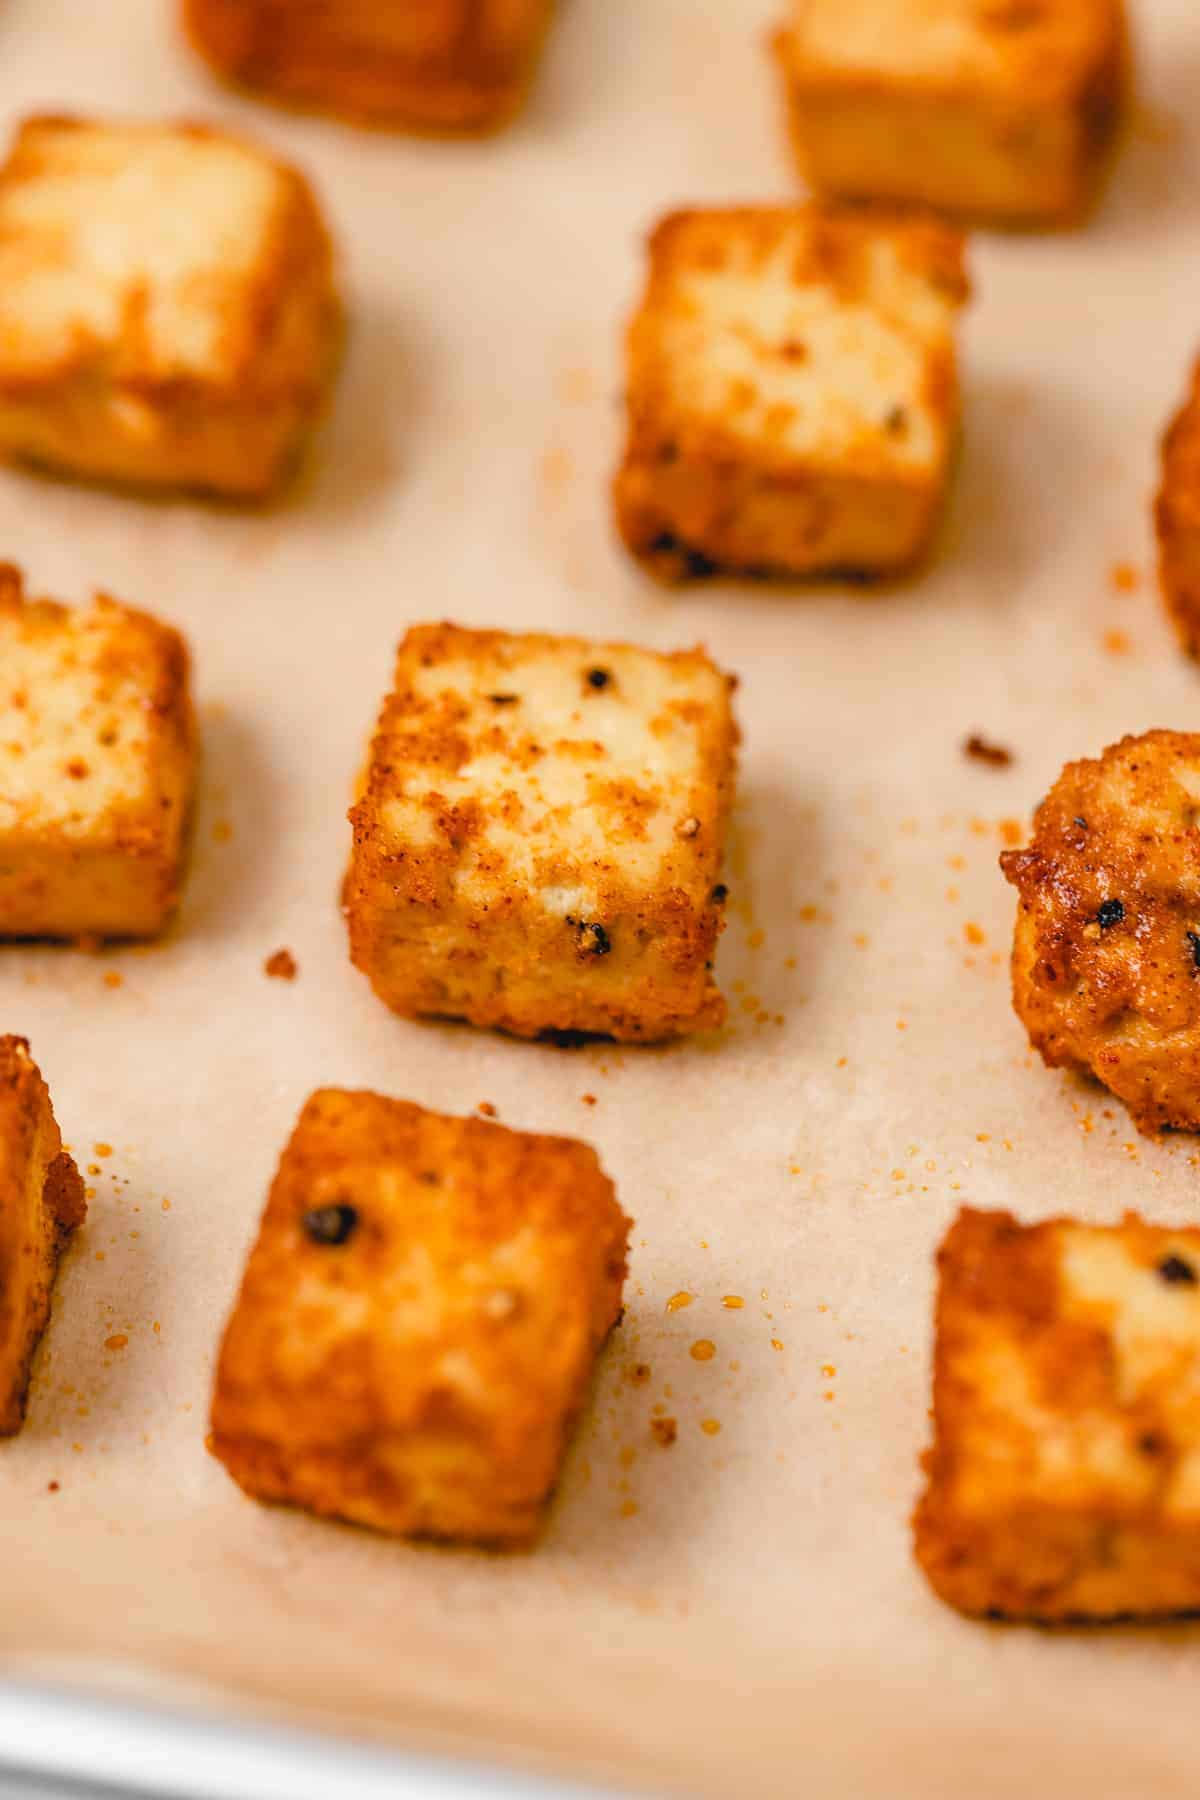 Baked tofu on a baking sheet with parchment paper dusted in black pepper, paprika, and other seasonings